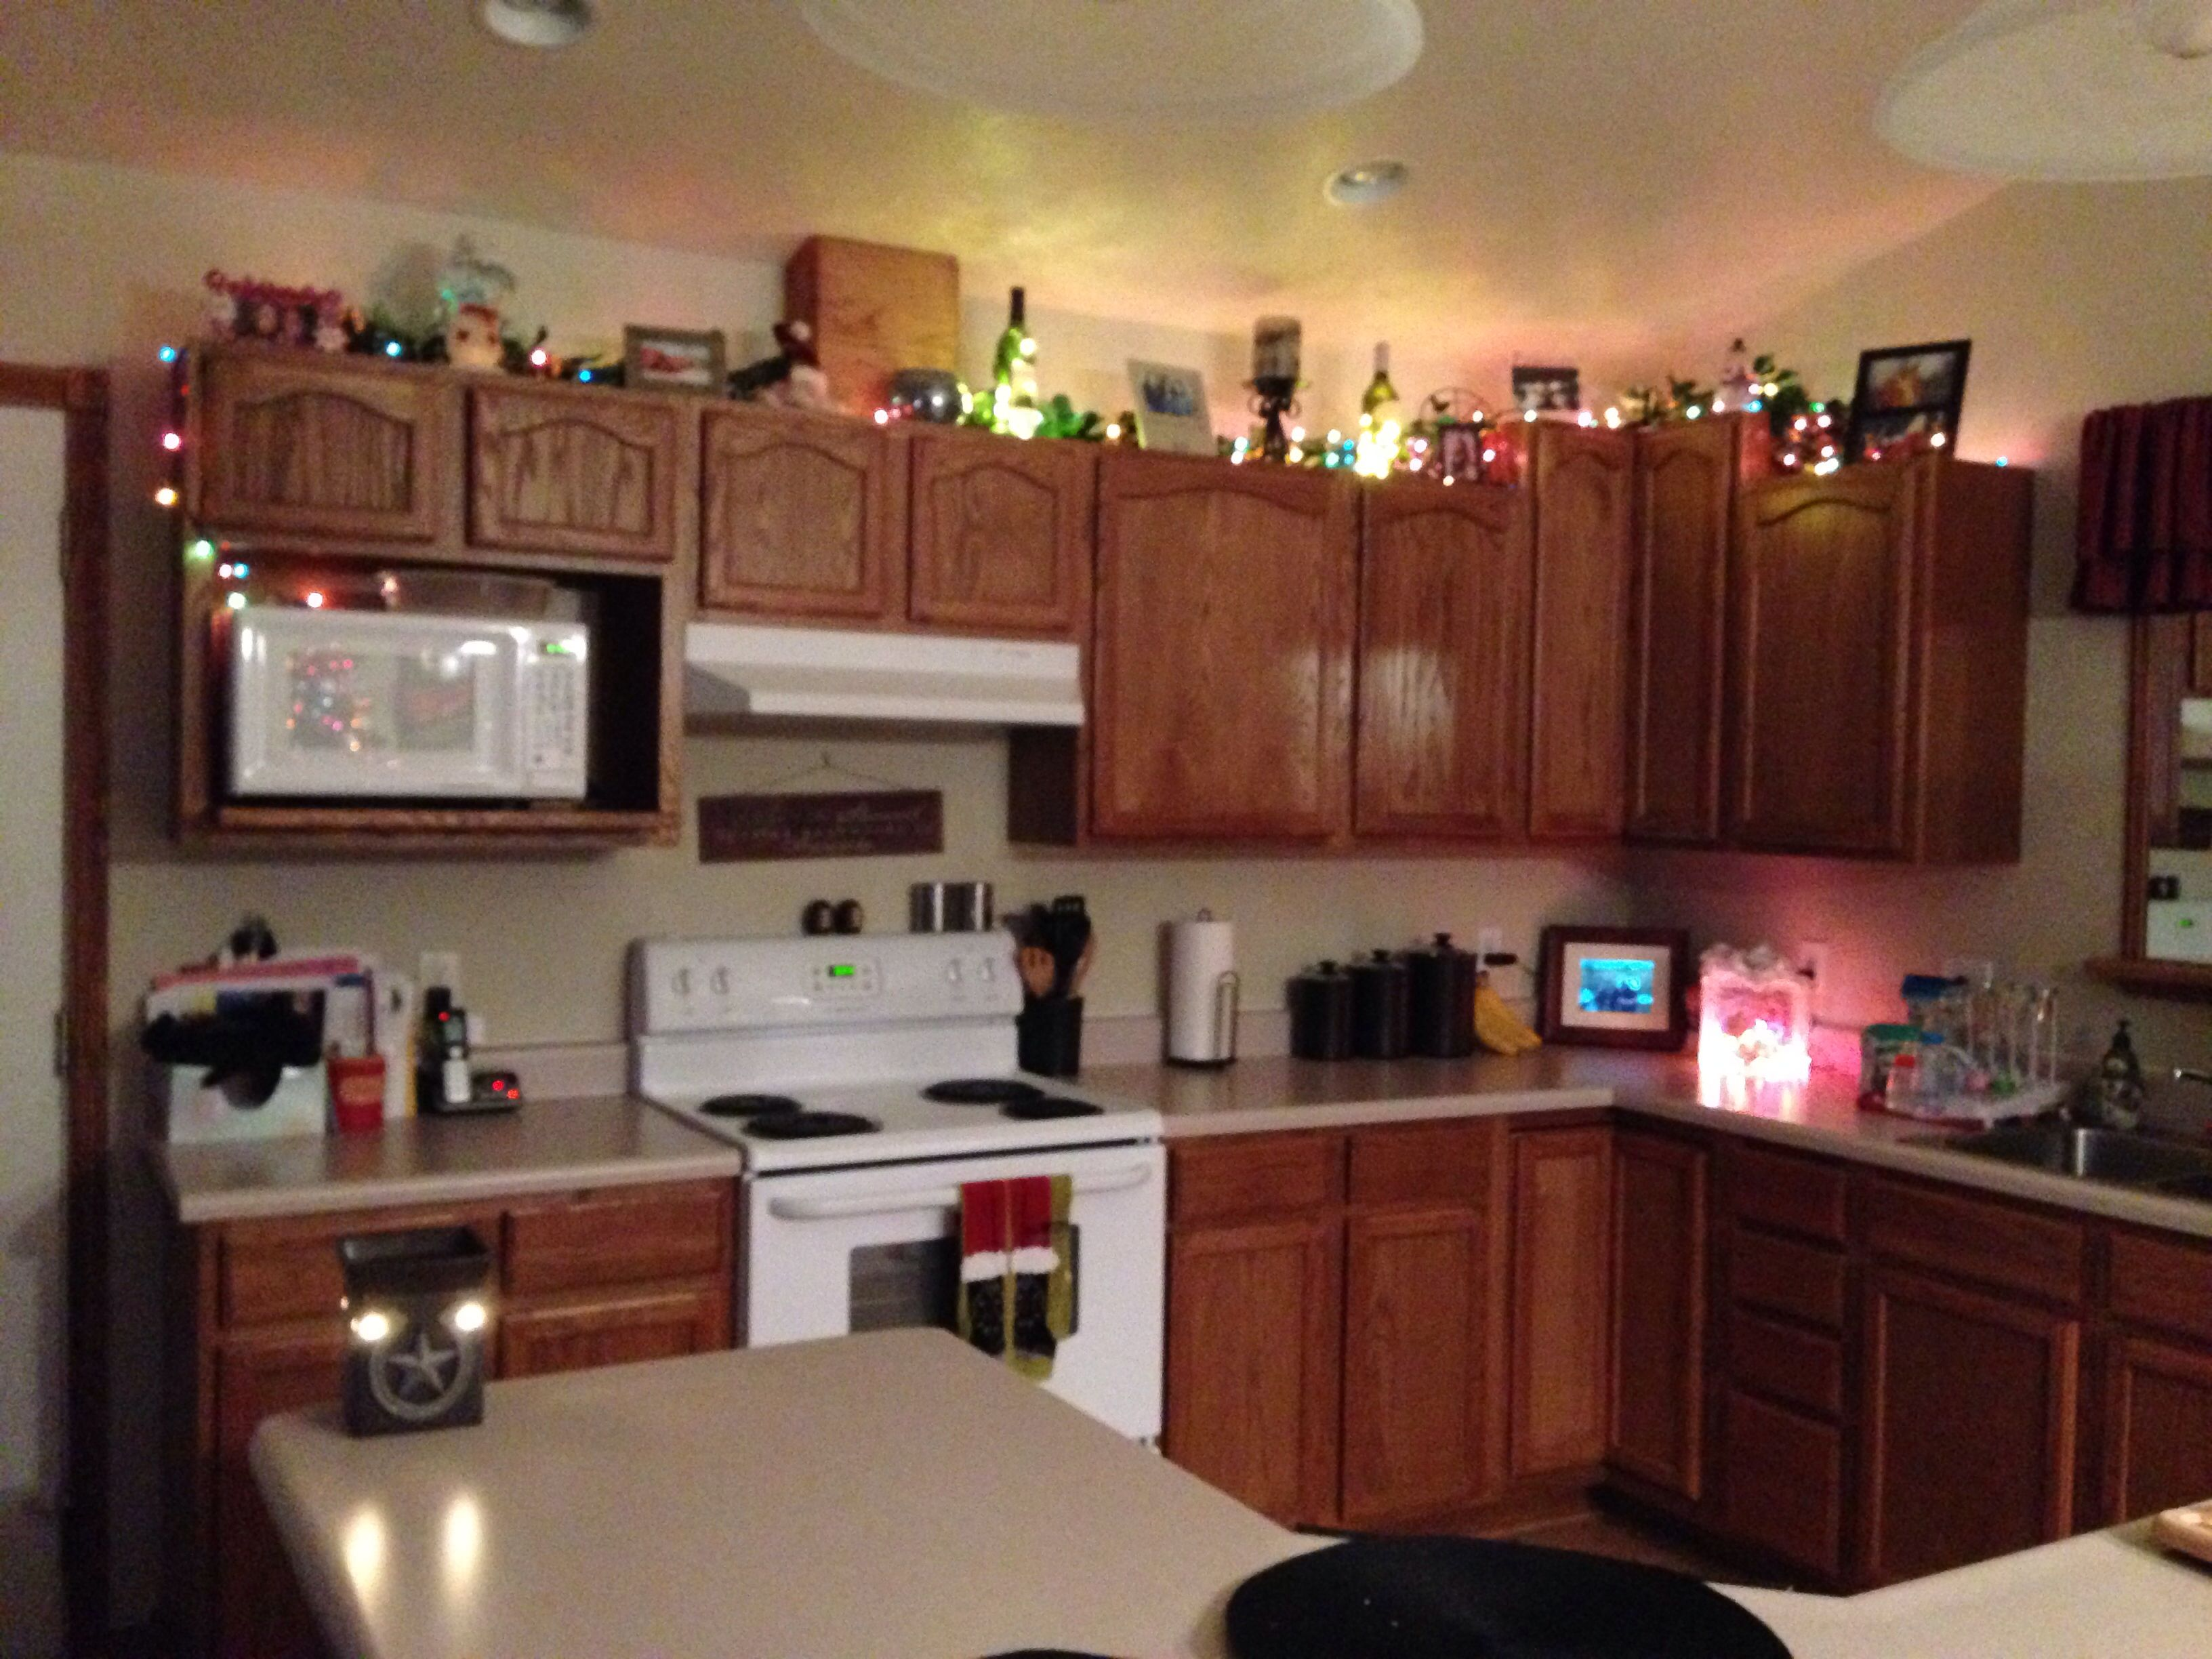 christmas decor on top of cabinets in half of my kitchen apartment deco decor top of cabinets on kitchen cabinets xmas decor id=51837